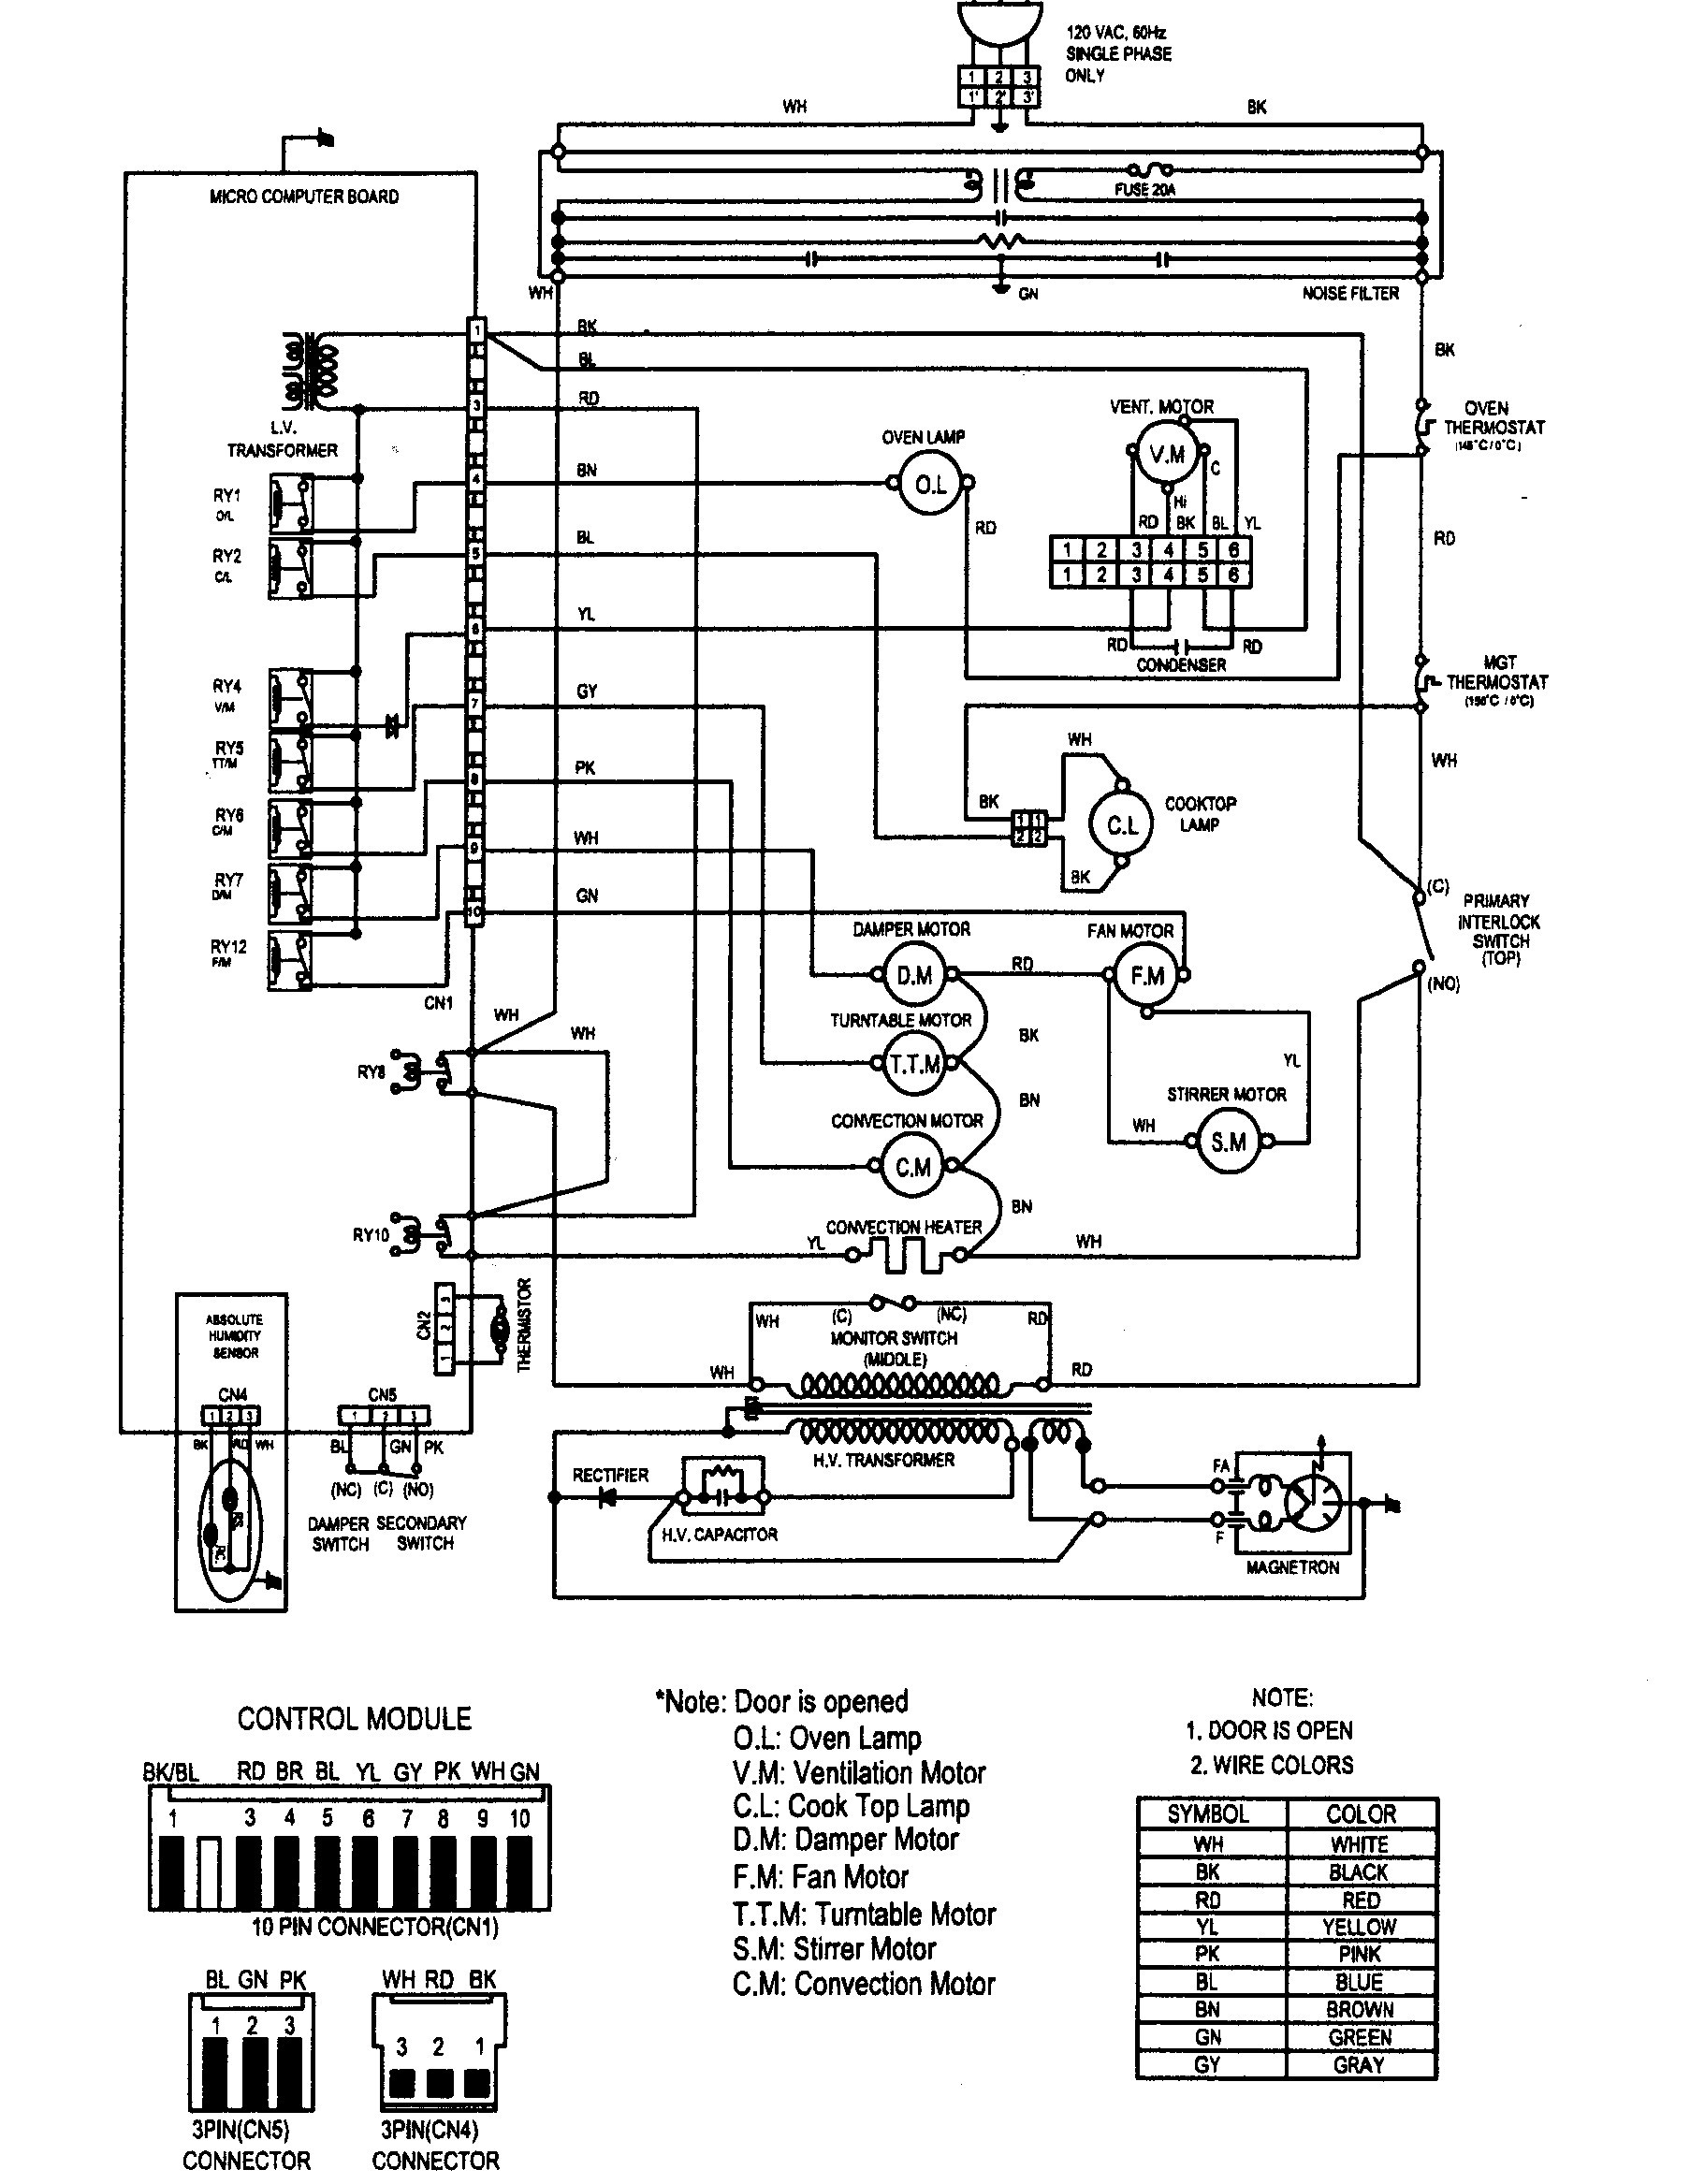 File: Kenmore Ultra Wash Dishwasher Schematic